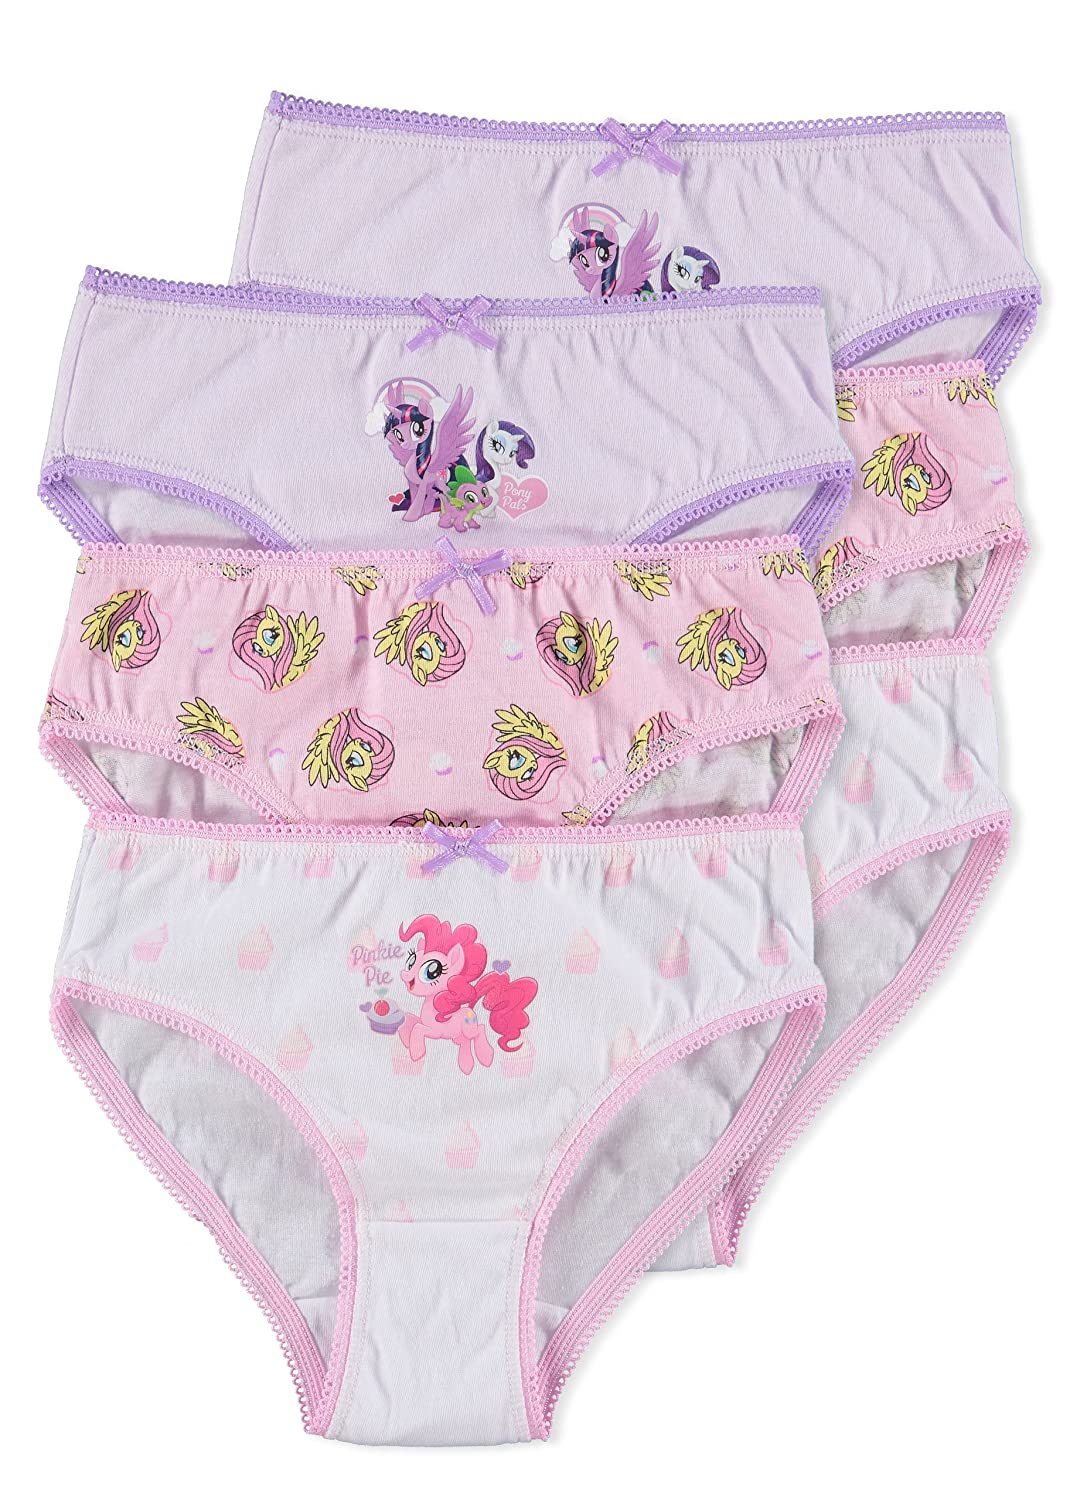 My Little Pony Girls Underwear | Briefs 6-Pack Jellifish Kids